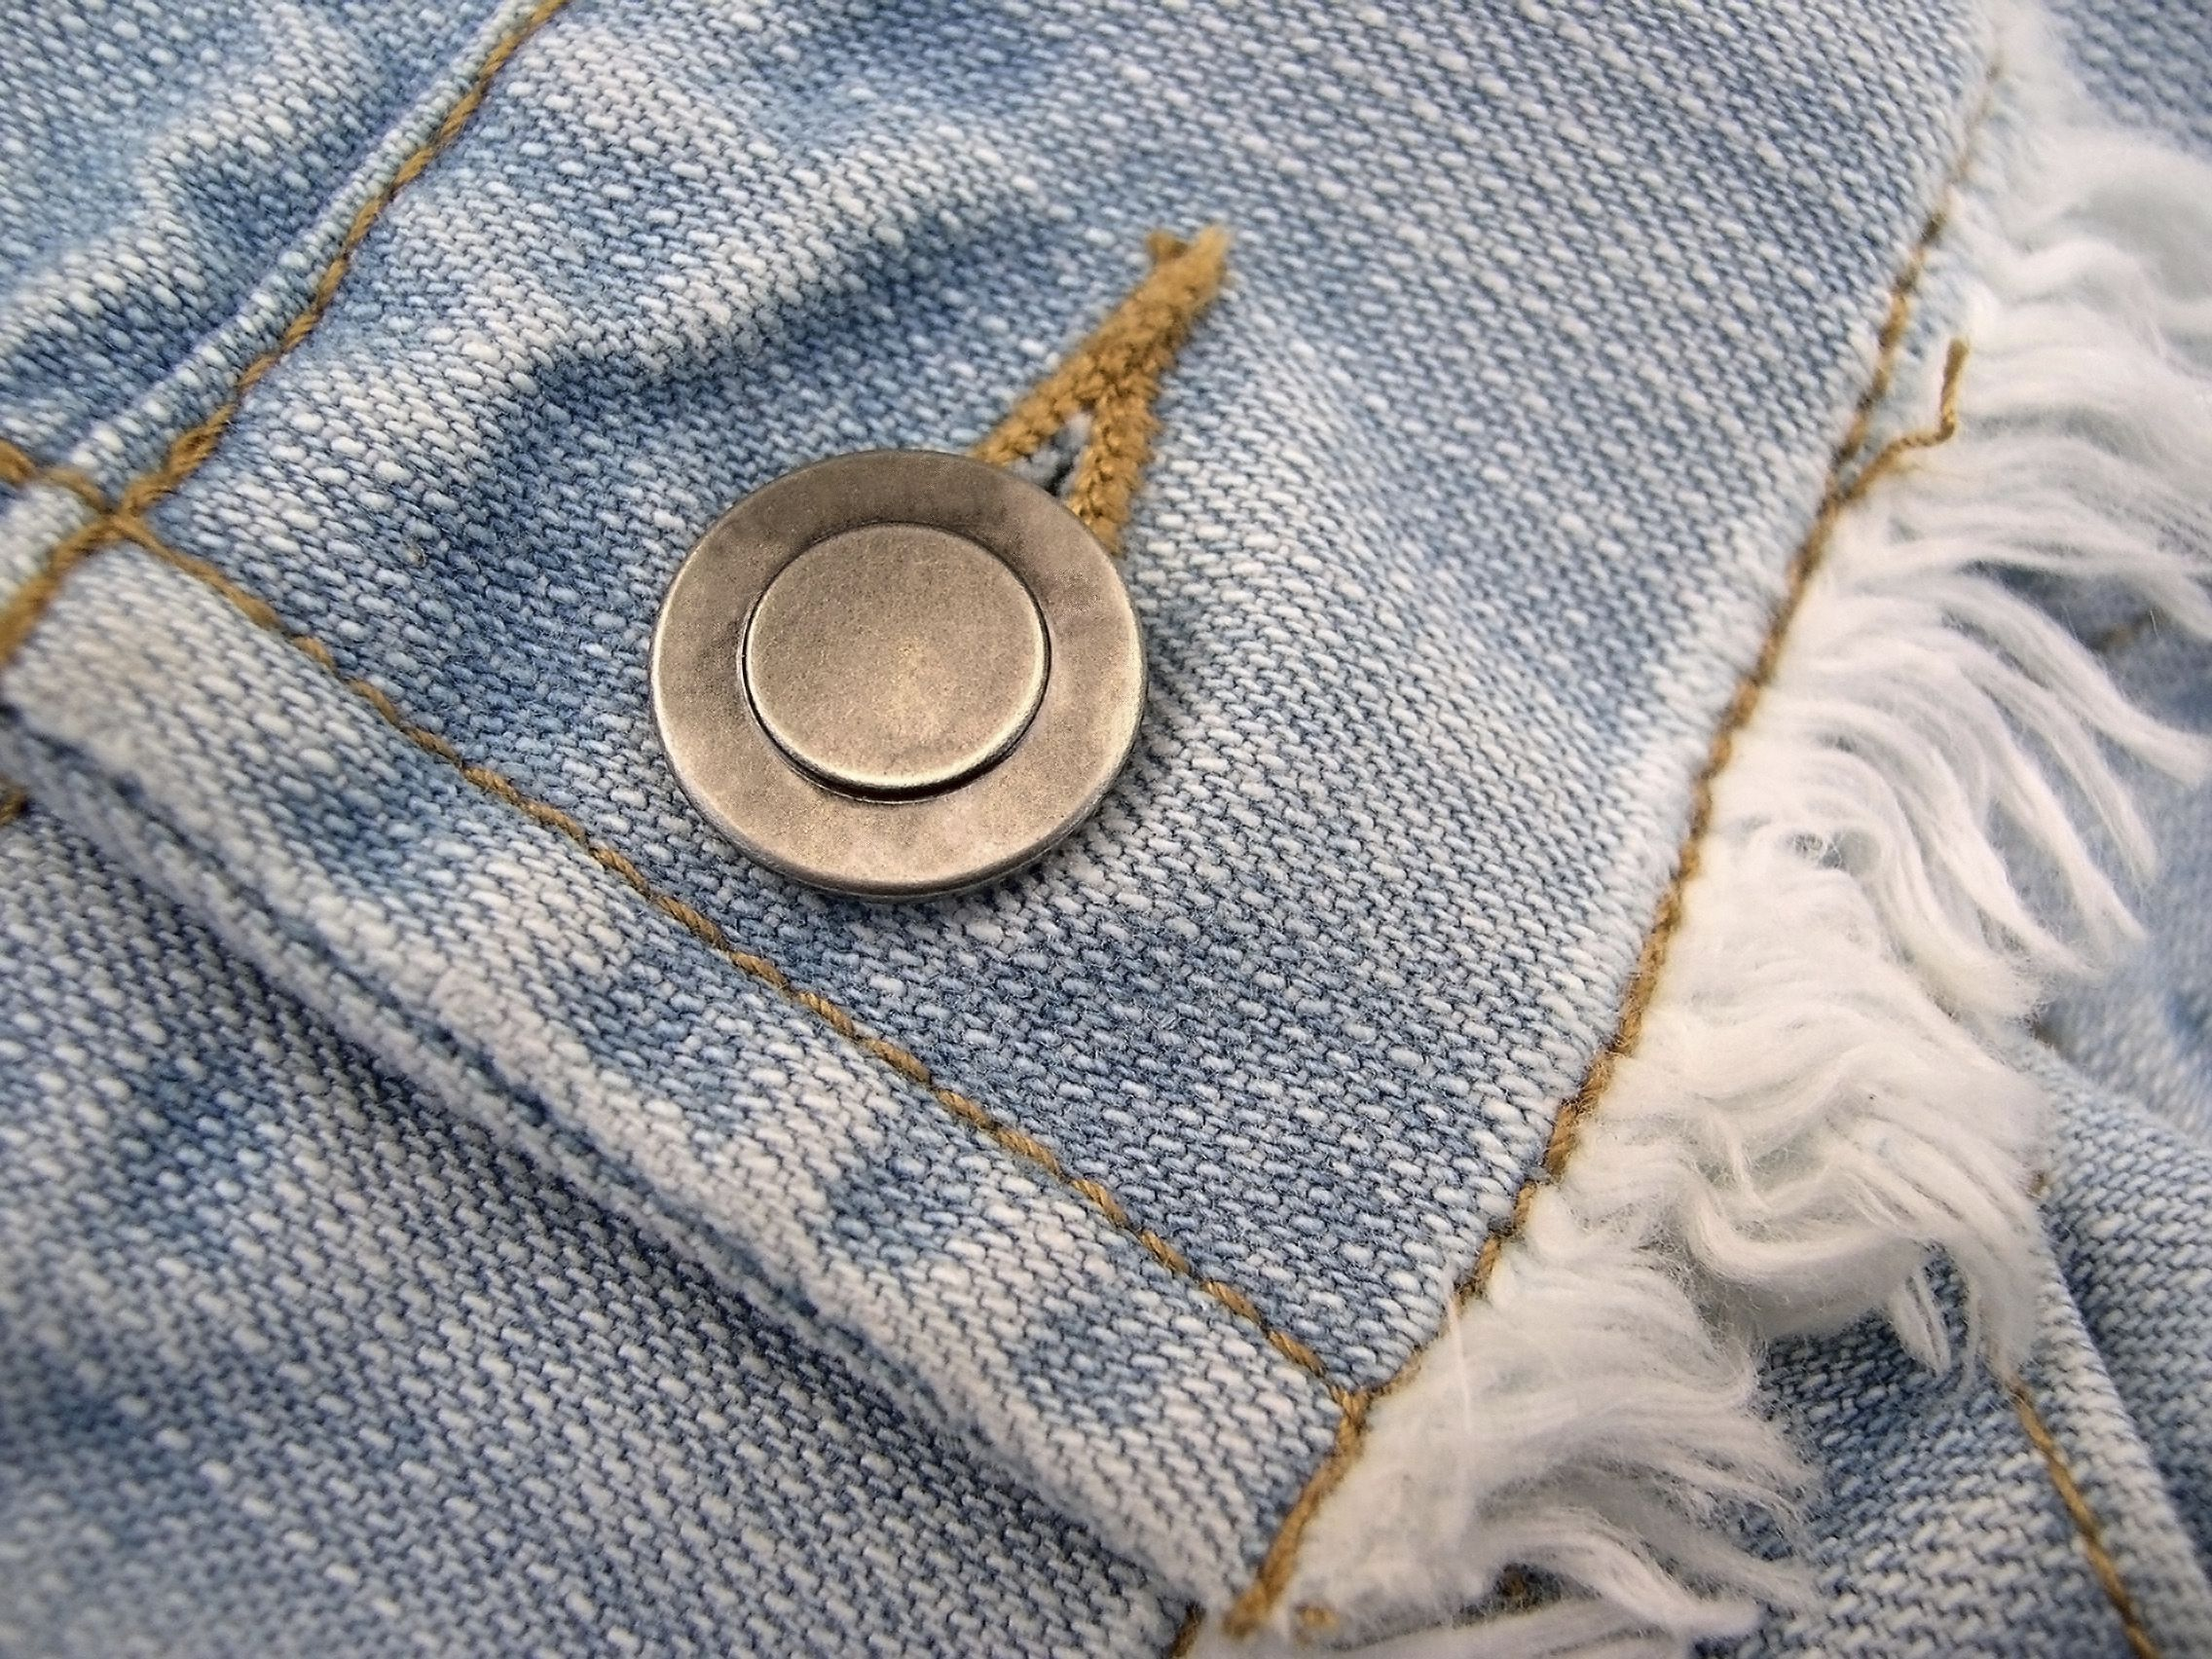 Remove metal trim and jewelry tarnish stains on clothes Silver ring tarnished in swimming pool